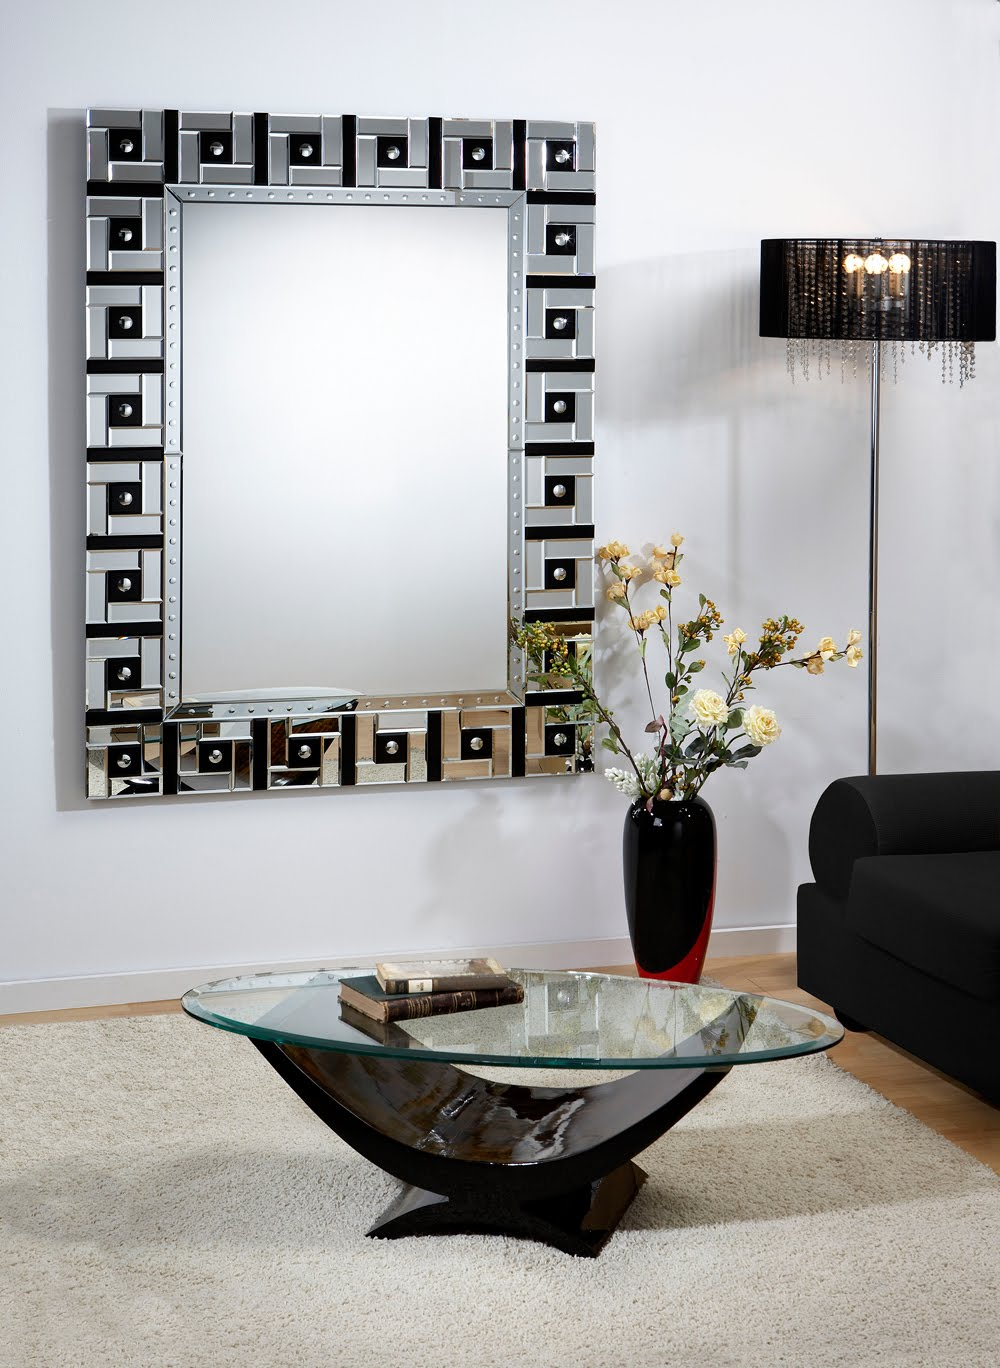 miroir d coratif design id es de d coration int rieure french decor